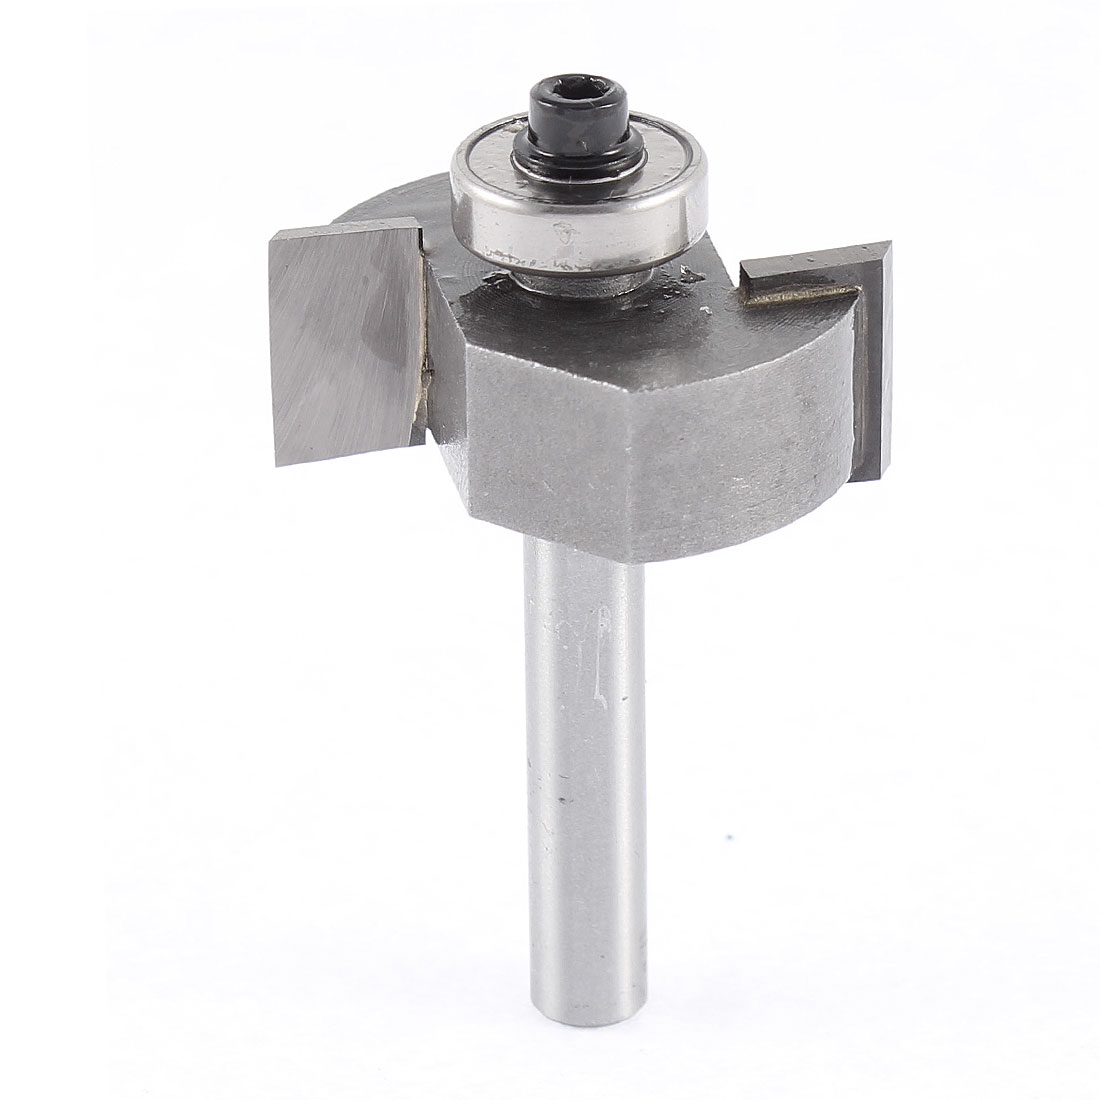 "1/4"" x 1/2"" Straight Shank End Bearing Slot Undercut Router Bit Cutter Silver Tone"